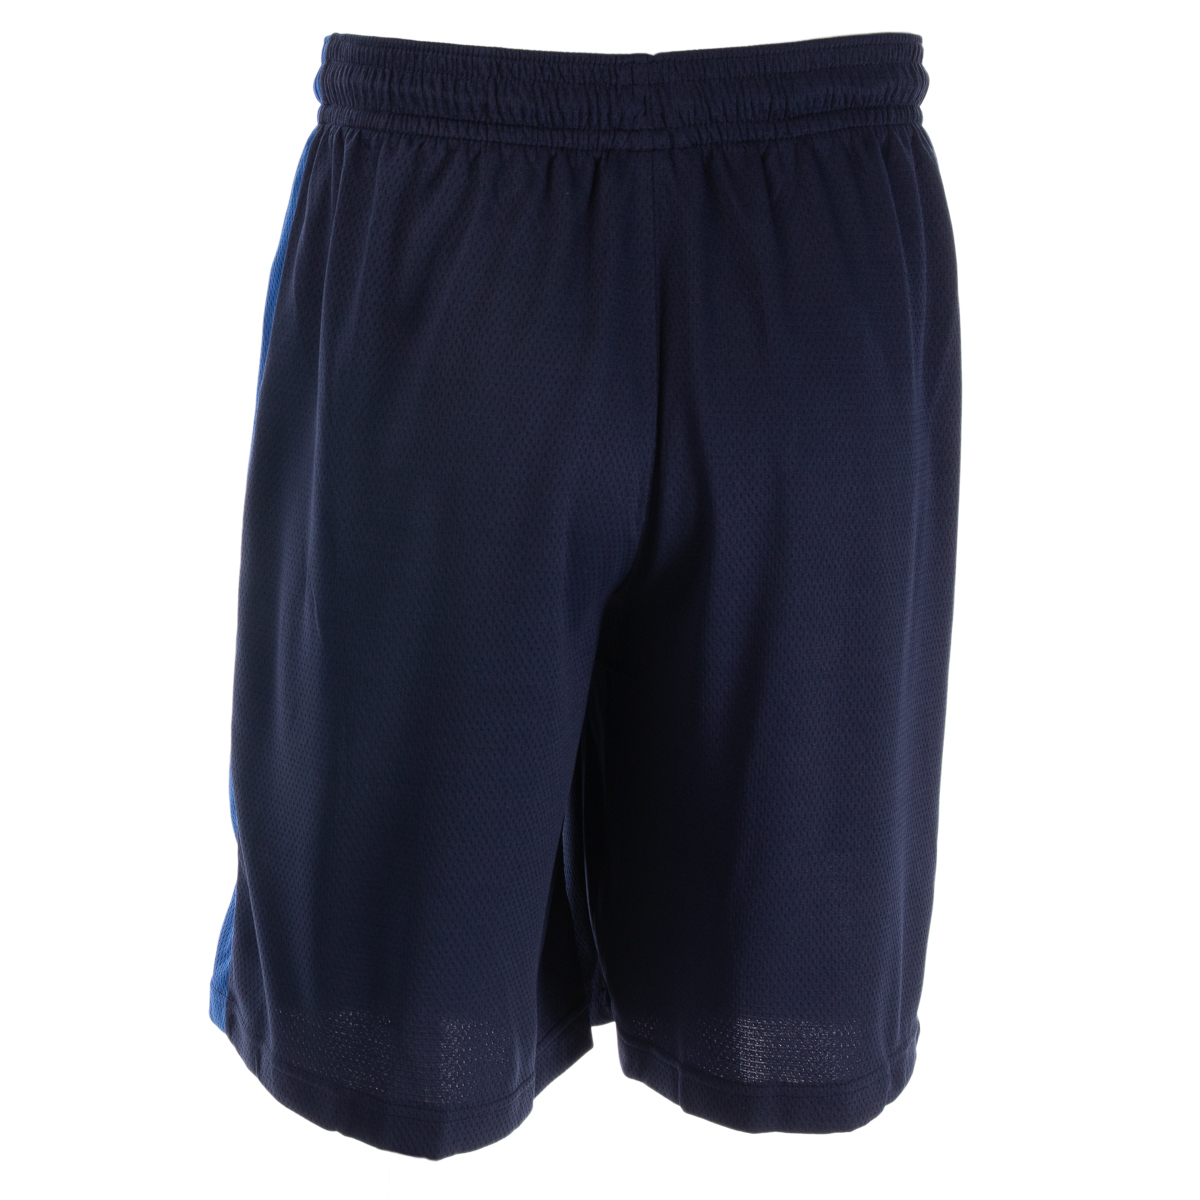 AND1 Basketball Shorts With Pockets Mesh Elastic Waist For Men Athletic Casual